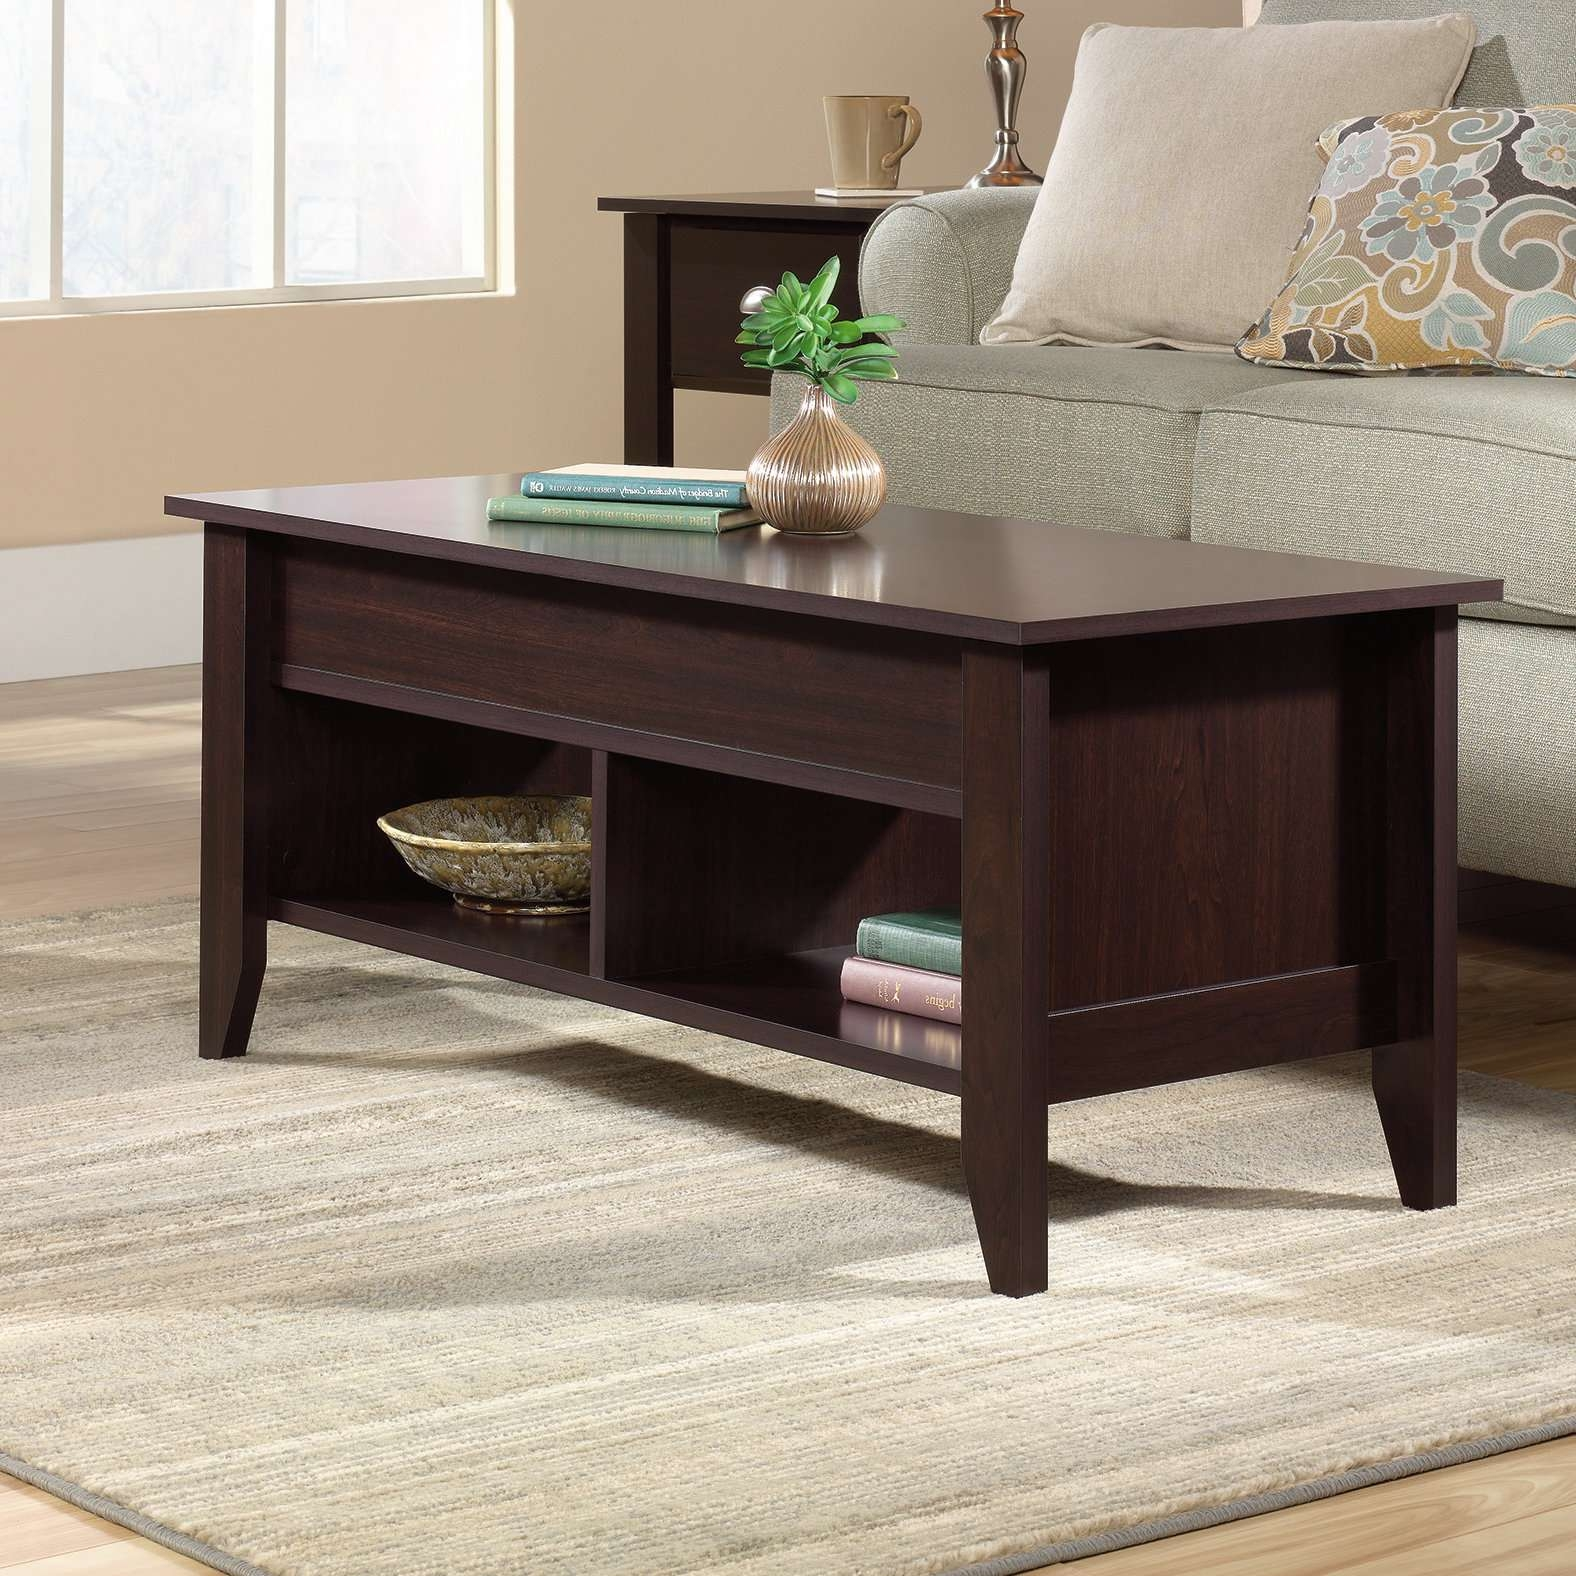 Lift Top Coffee Tables You'll Love (View 9 of 20)